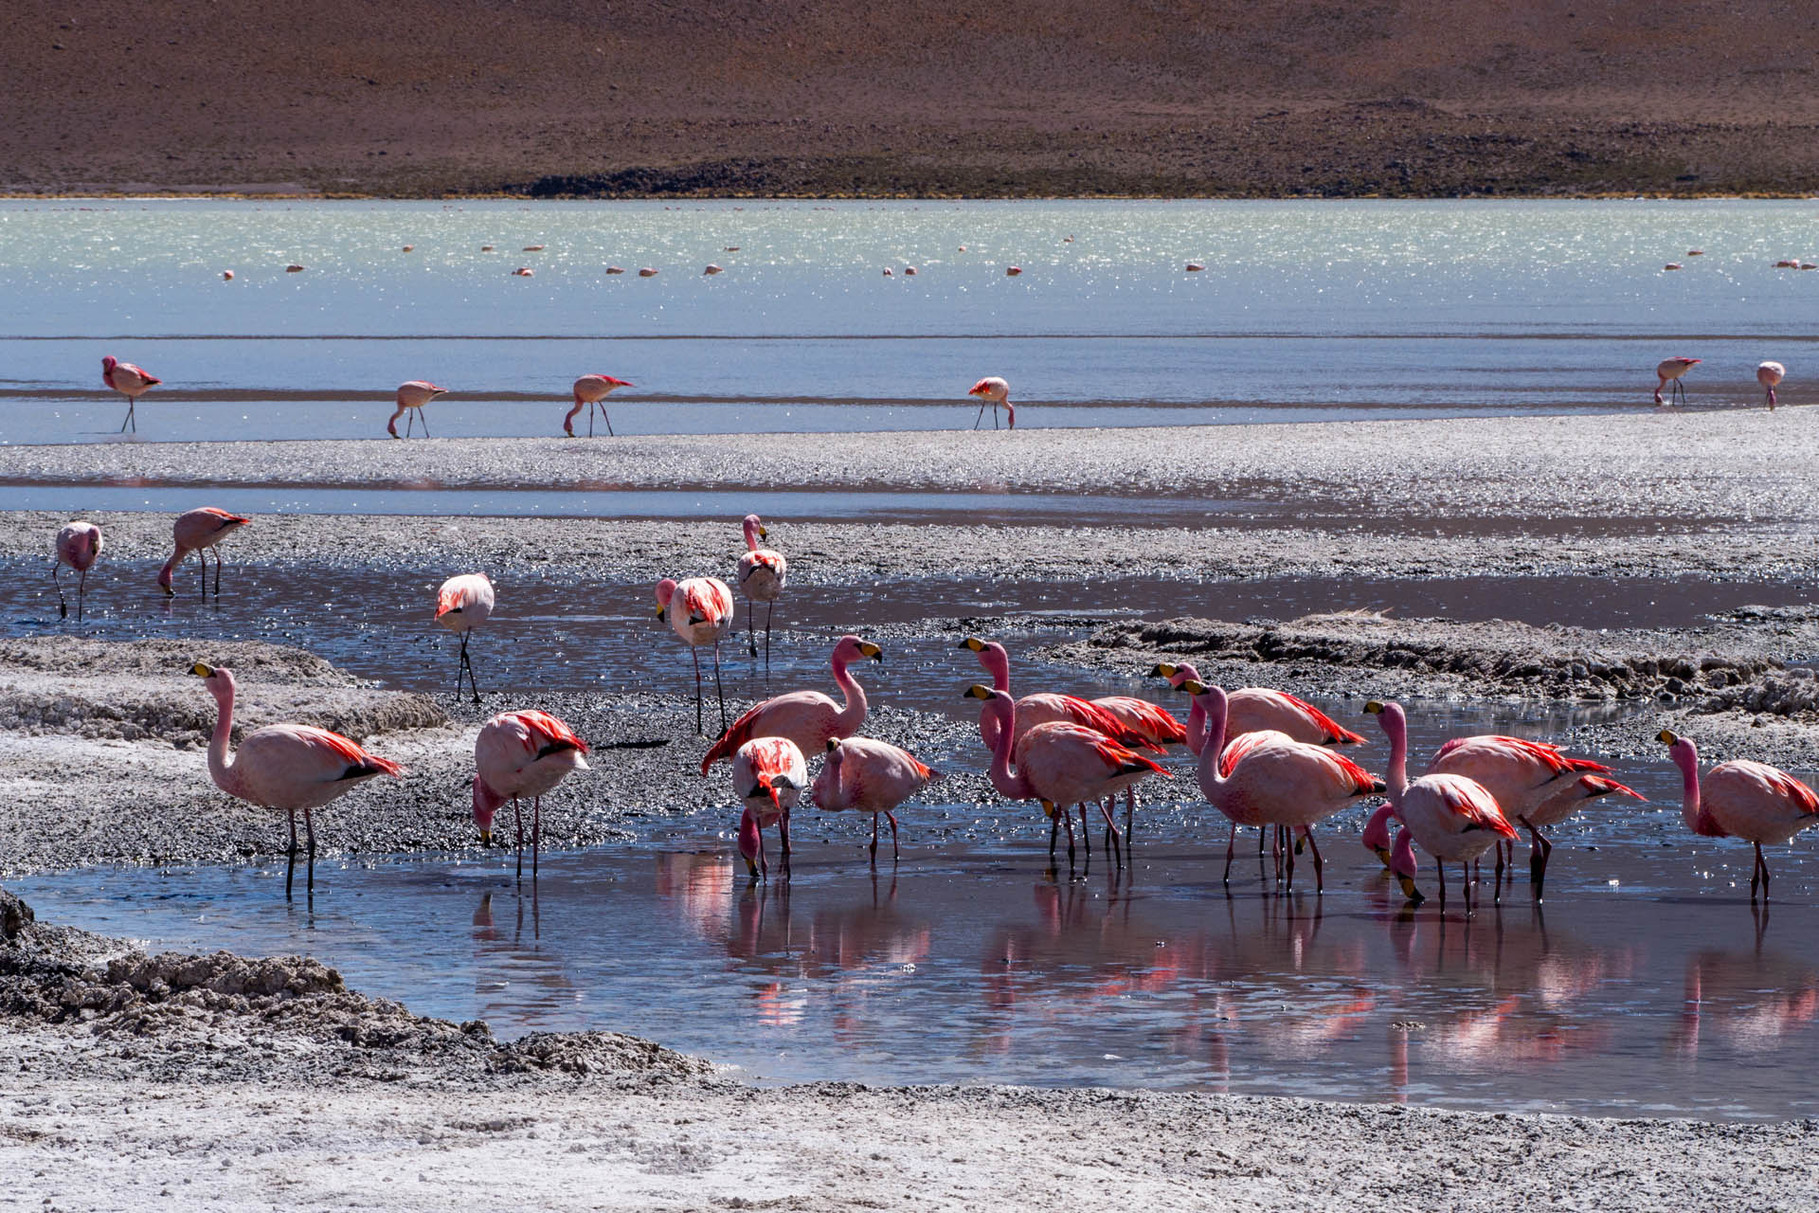 Laguna Hedionda with hundreds of Flamingos [Bolivia, 2014]